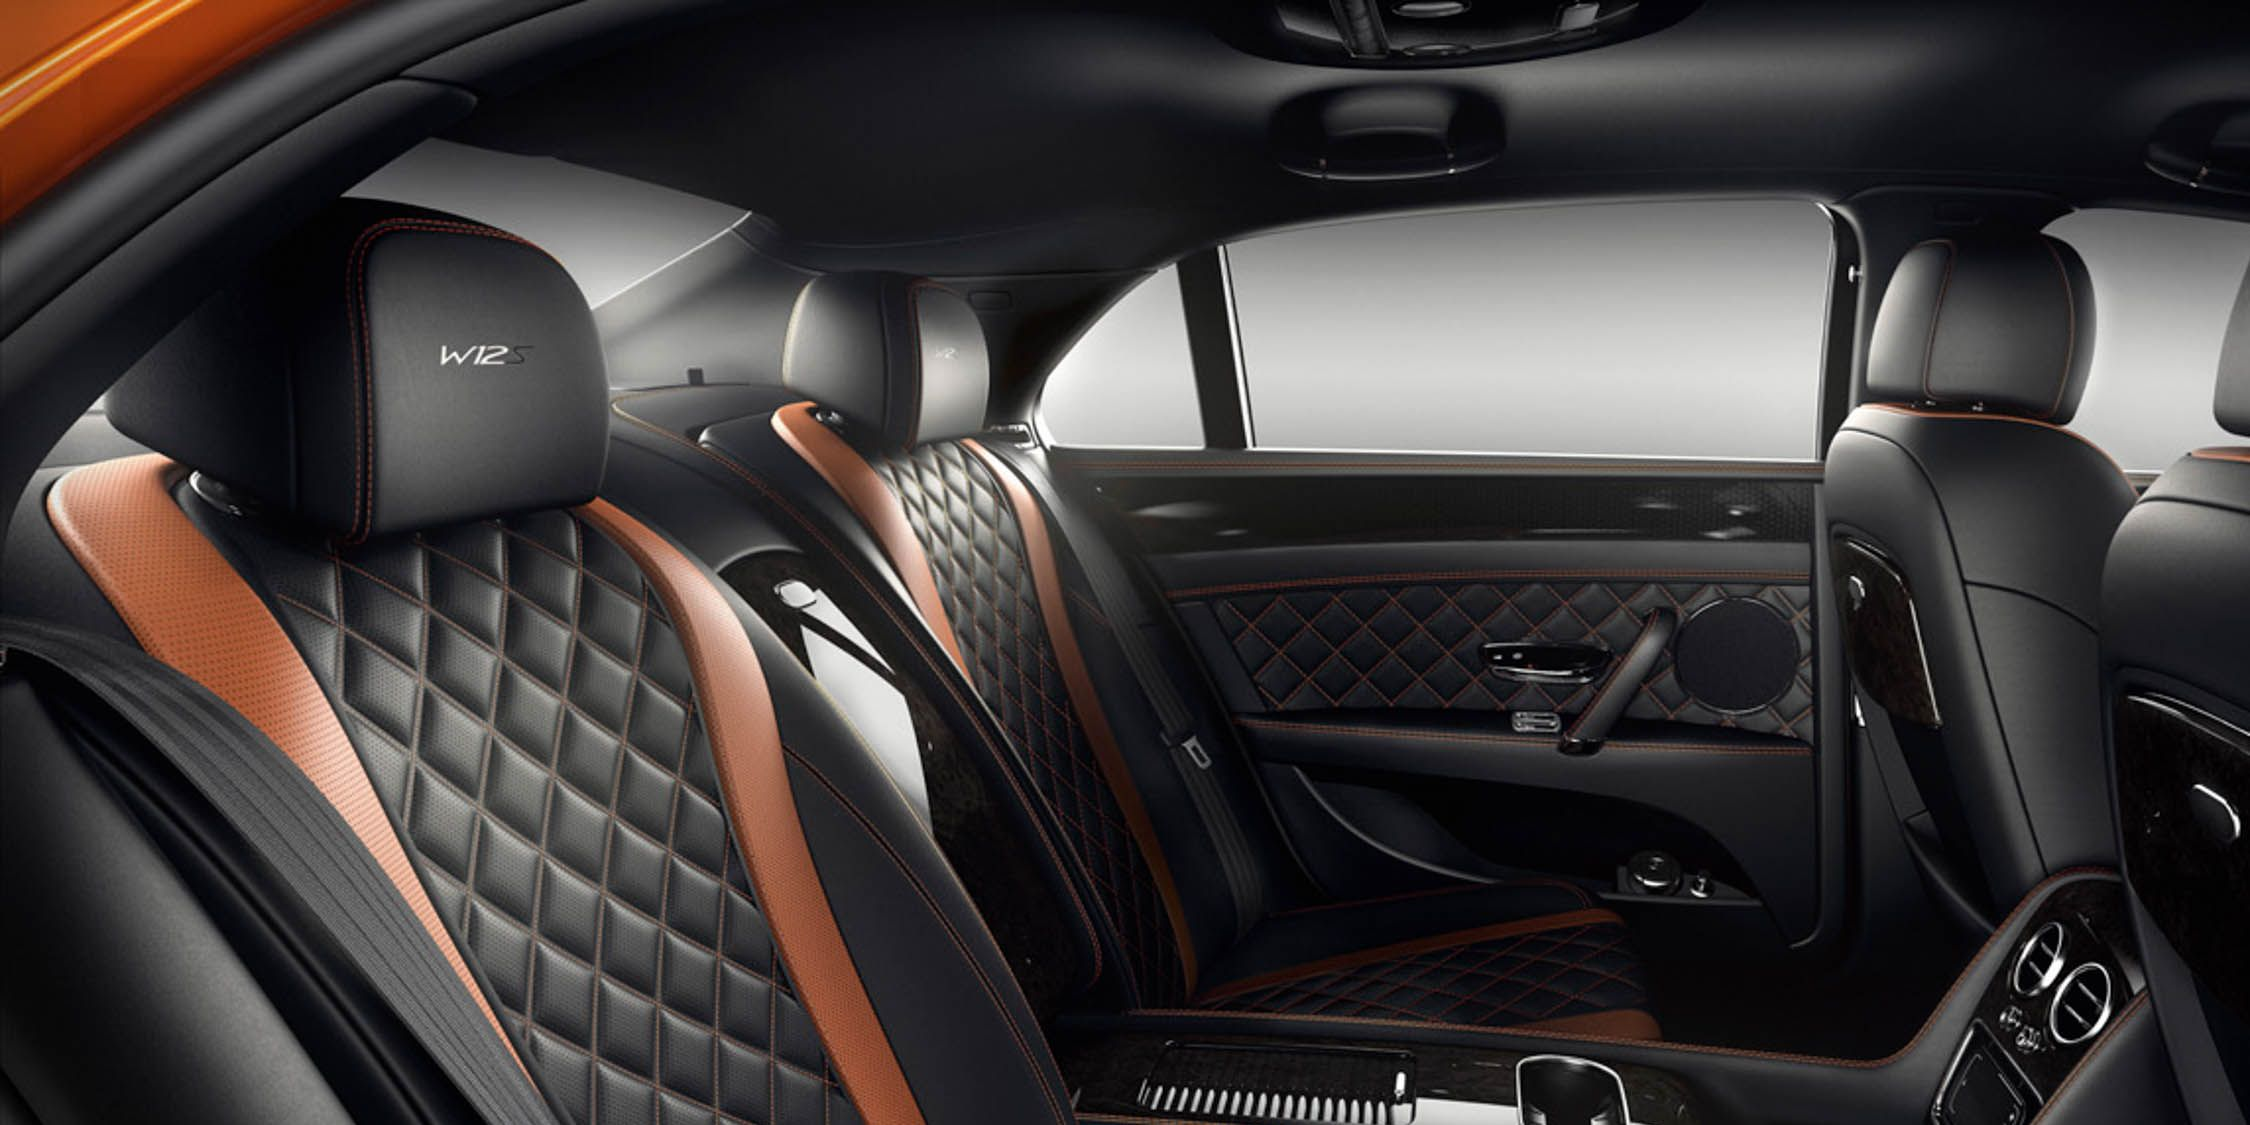 Bentley Flying Spur W12 S Packs 626 Horsepower News Car And Driver